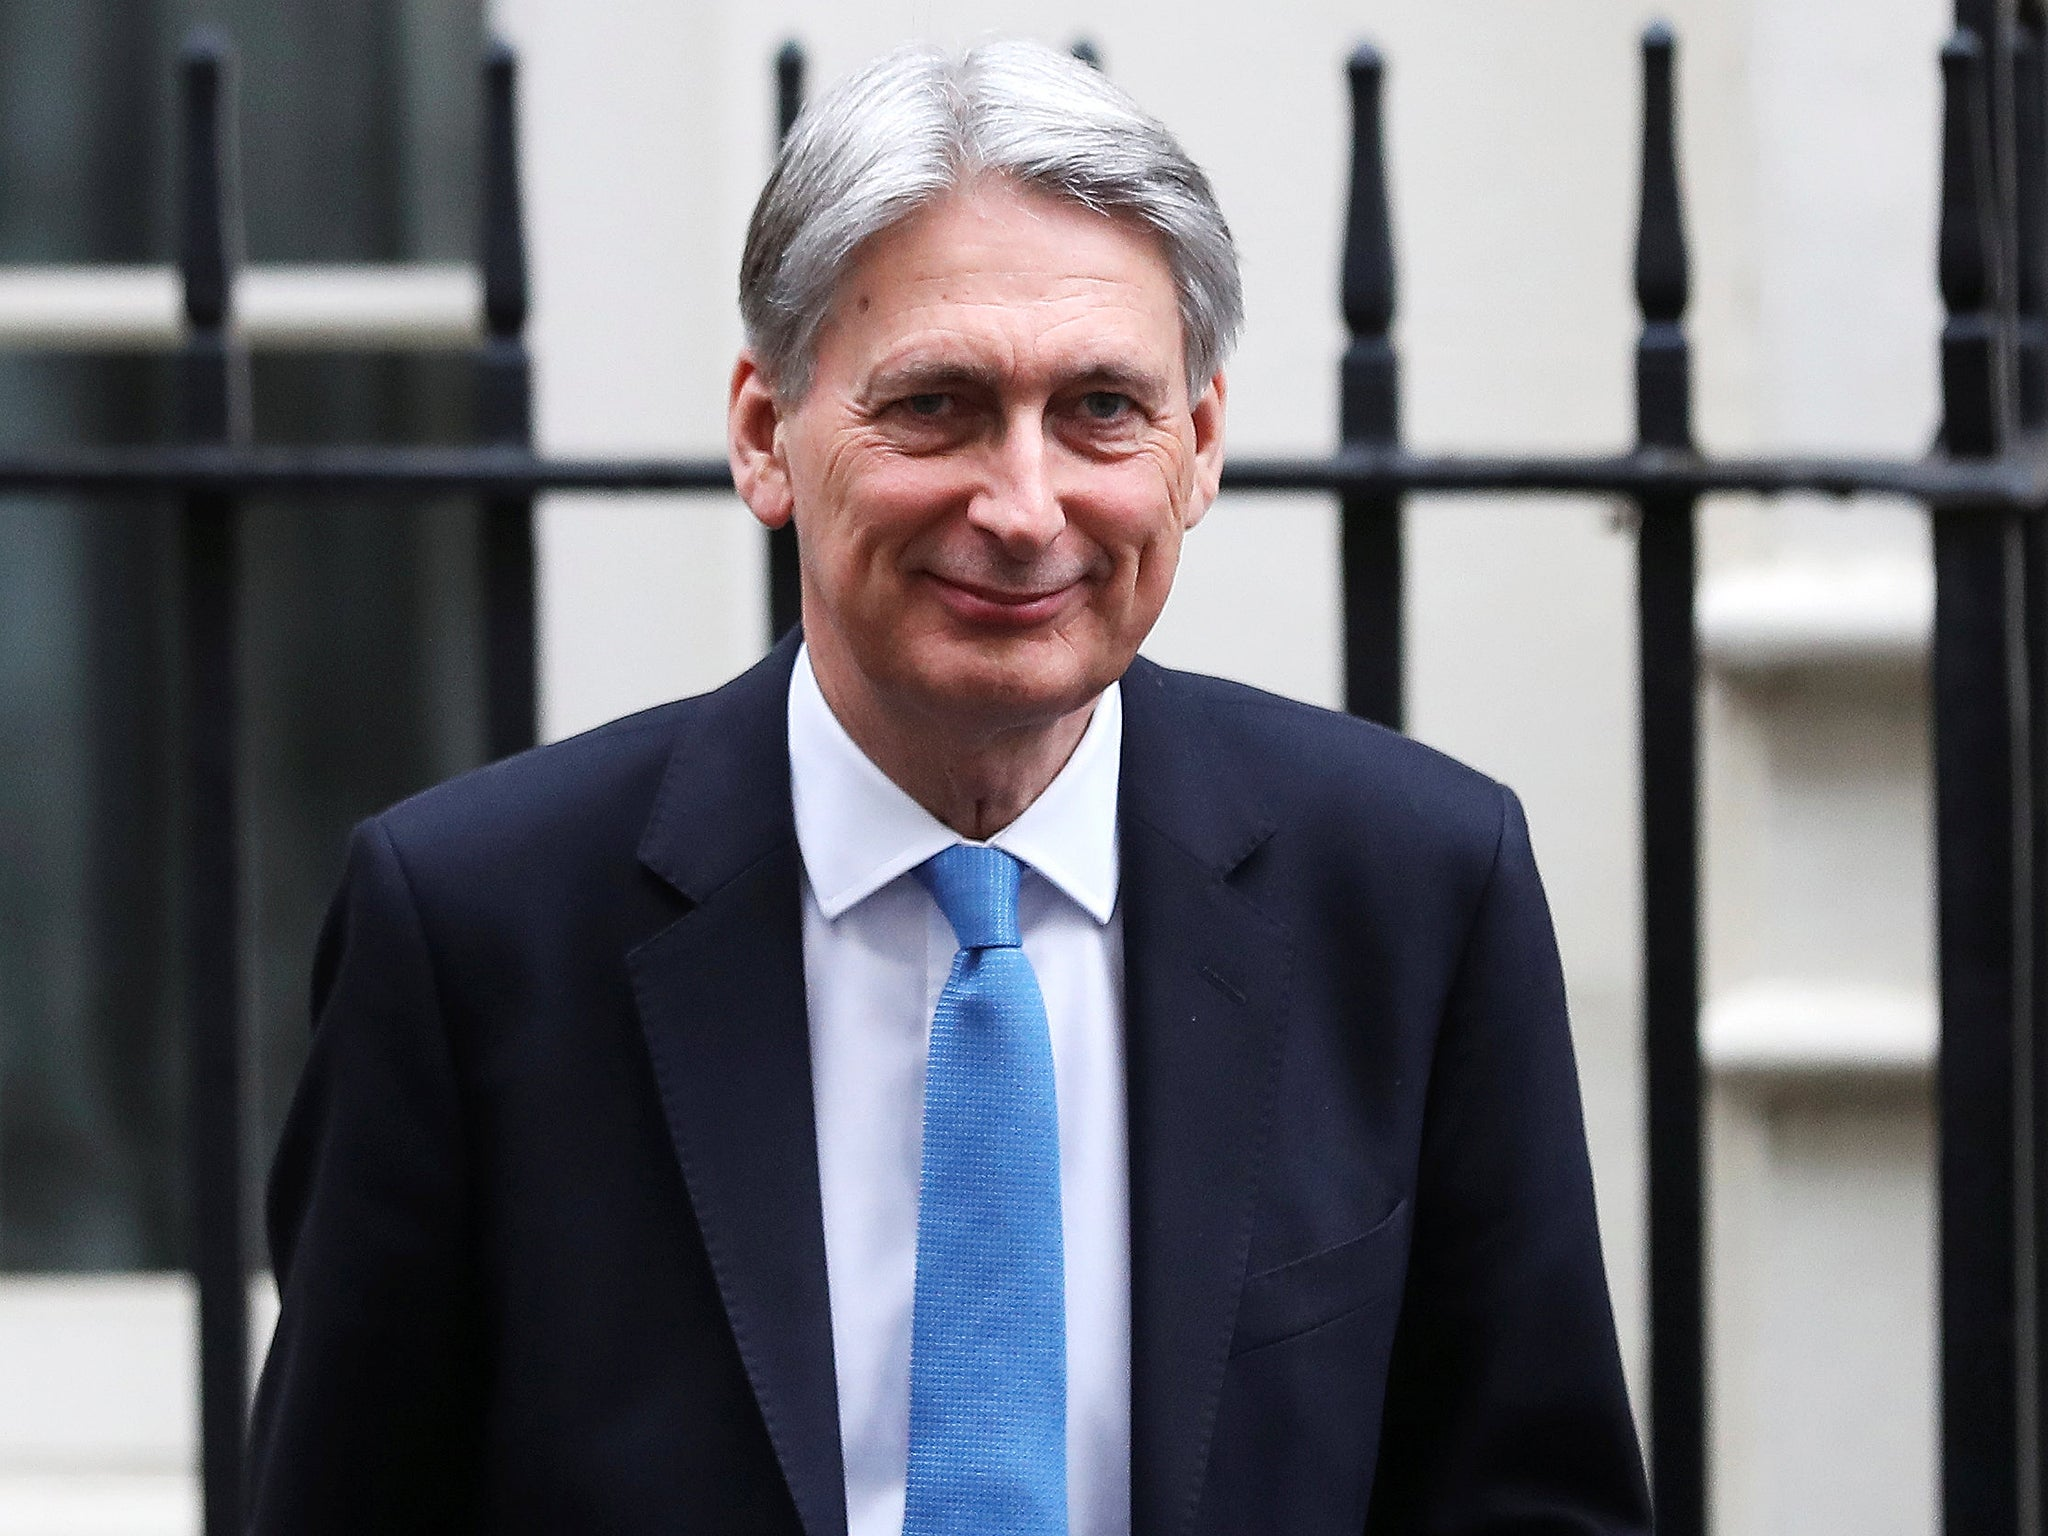 Leading business groups have broadly welcomed the Chancellor's commitment to investment and industry